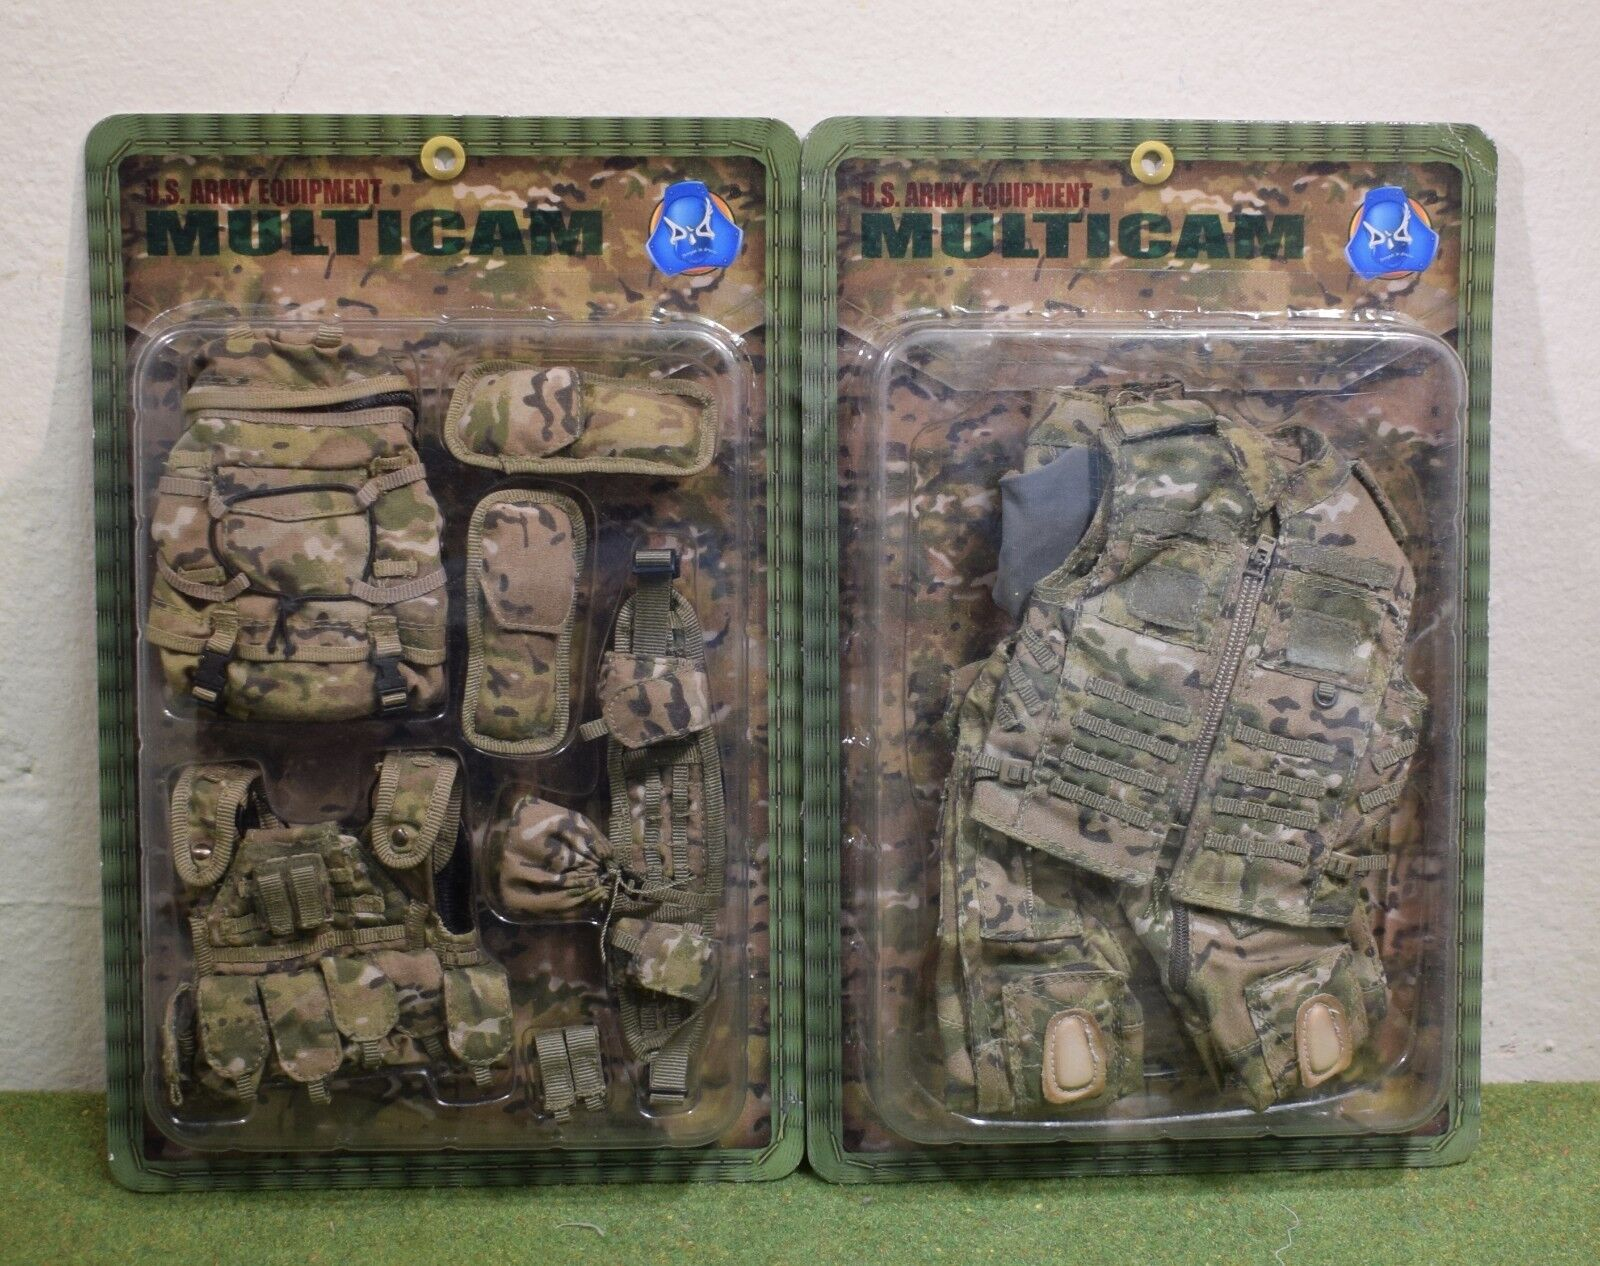 Dragon DREAMS 1 6 Modern US cardées ARMY EQUIPMENT Multicam E60055 & E60056